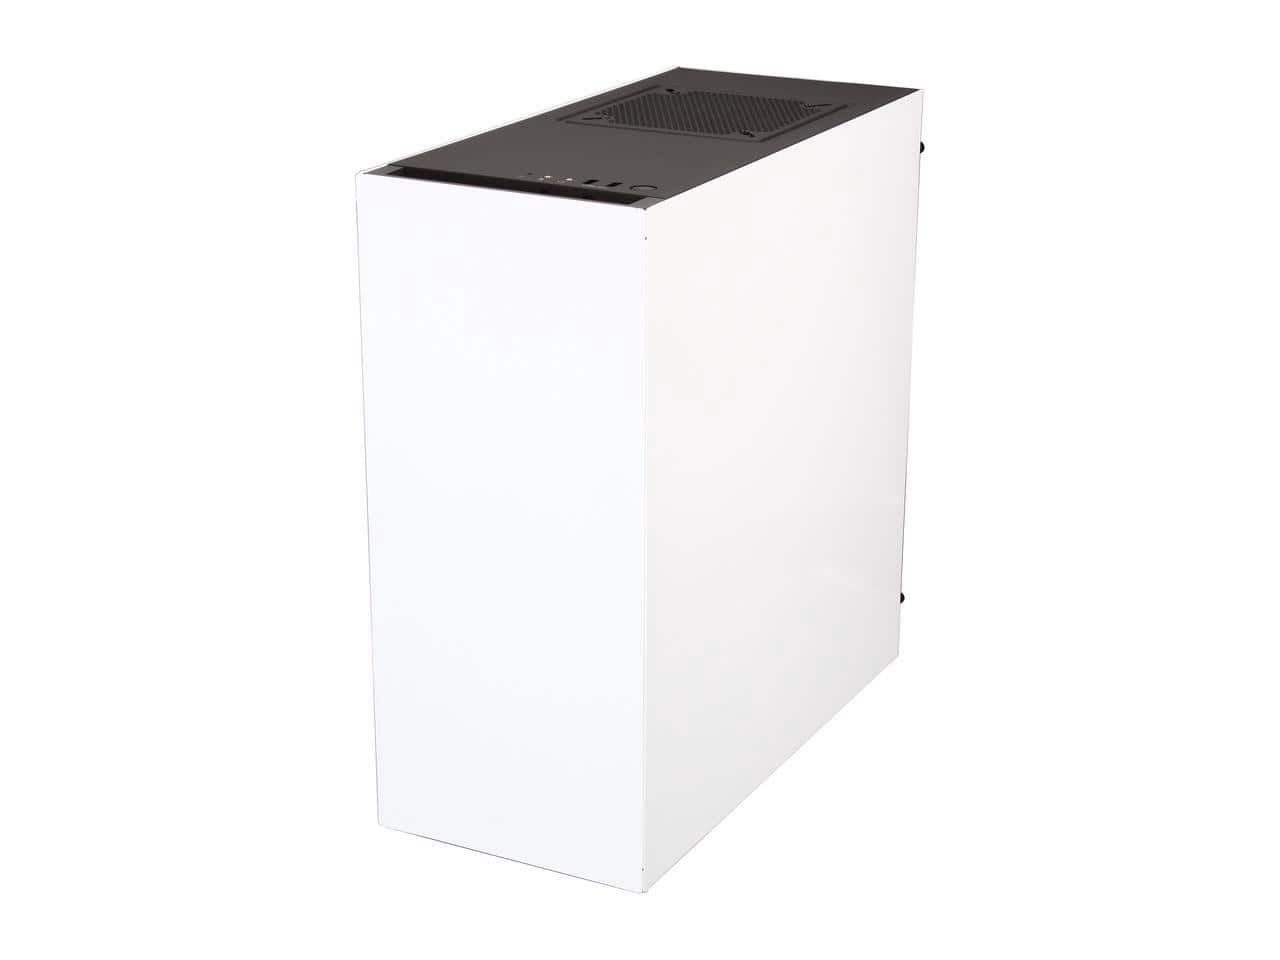 NZXT - S340 Mid Tower Case - Glossy White, MIR, $54.98